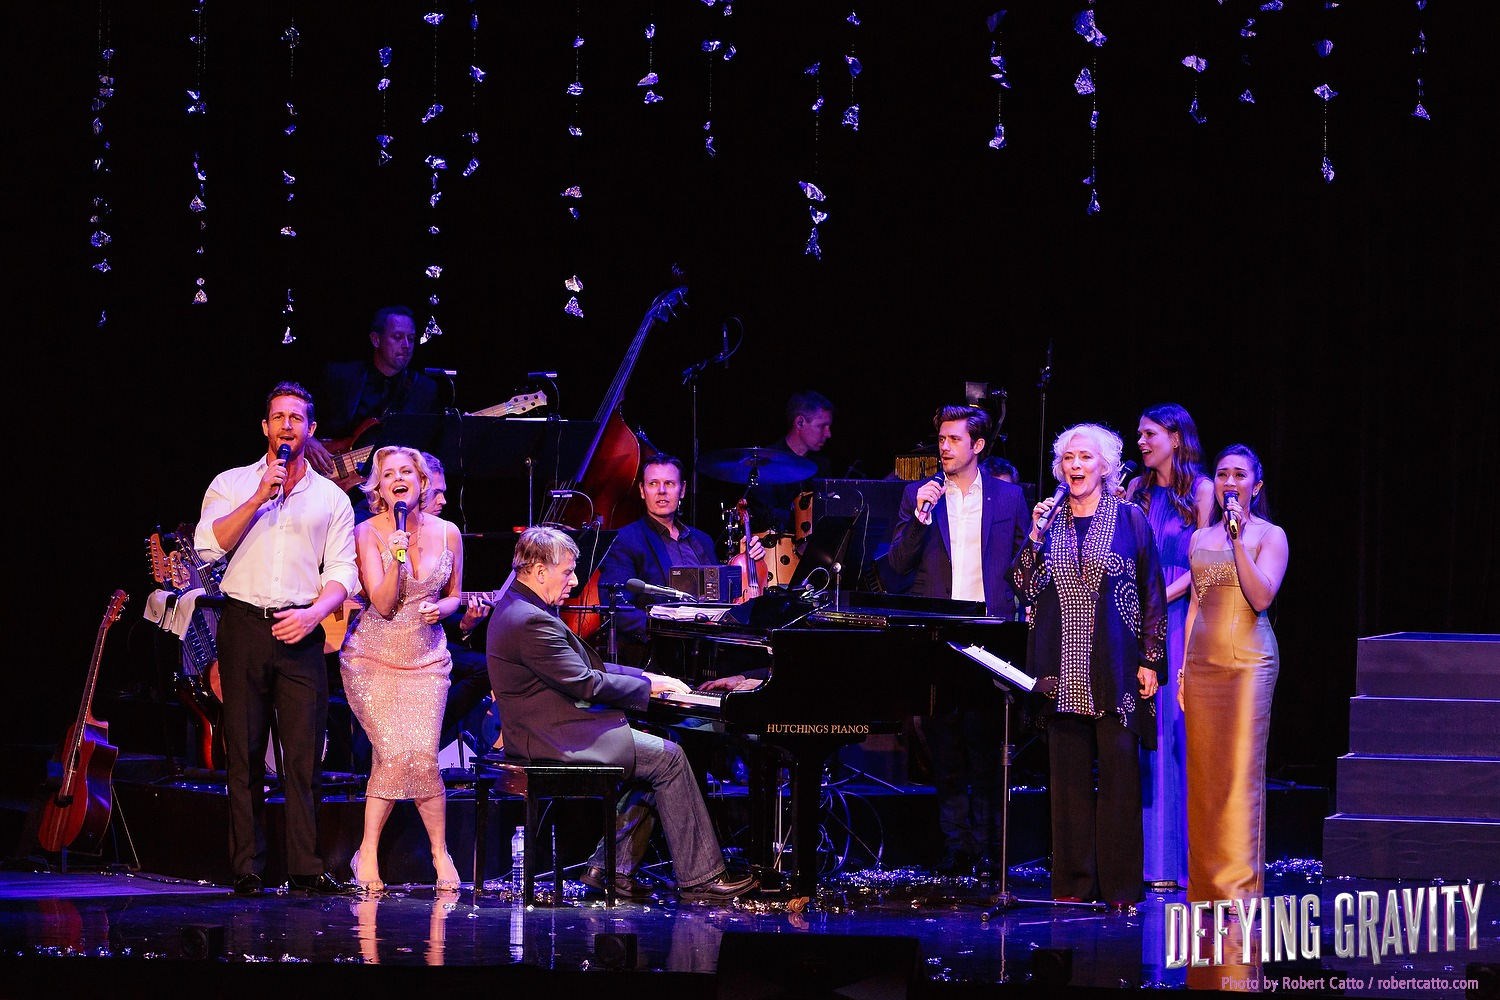 The cast of Defying Gravity sing Day By Day with Stephen Schwartz